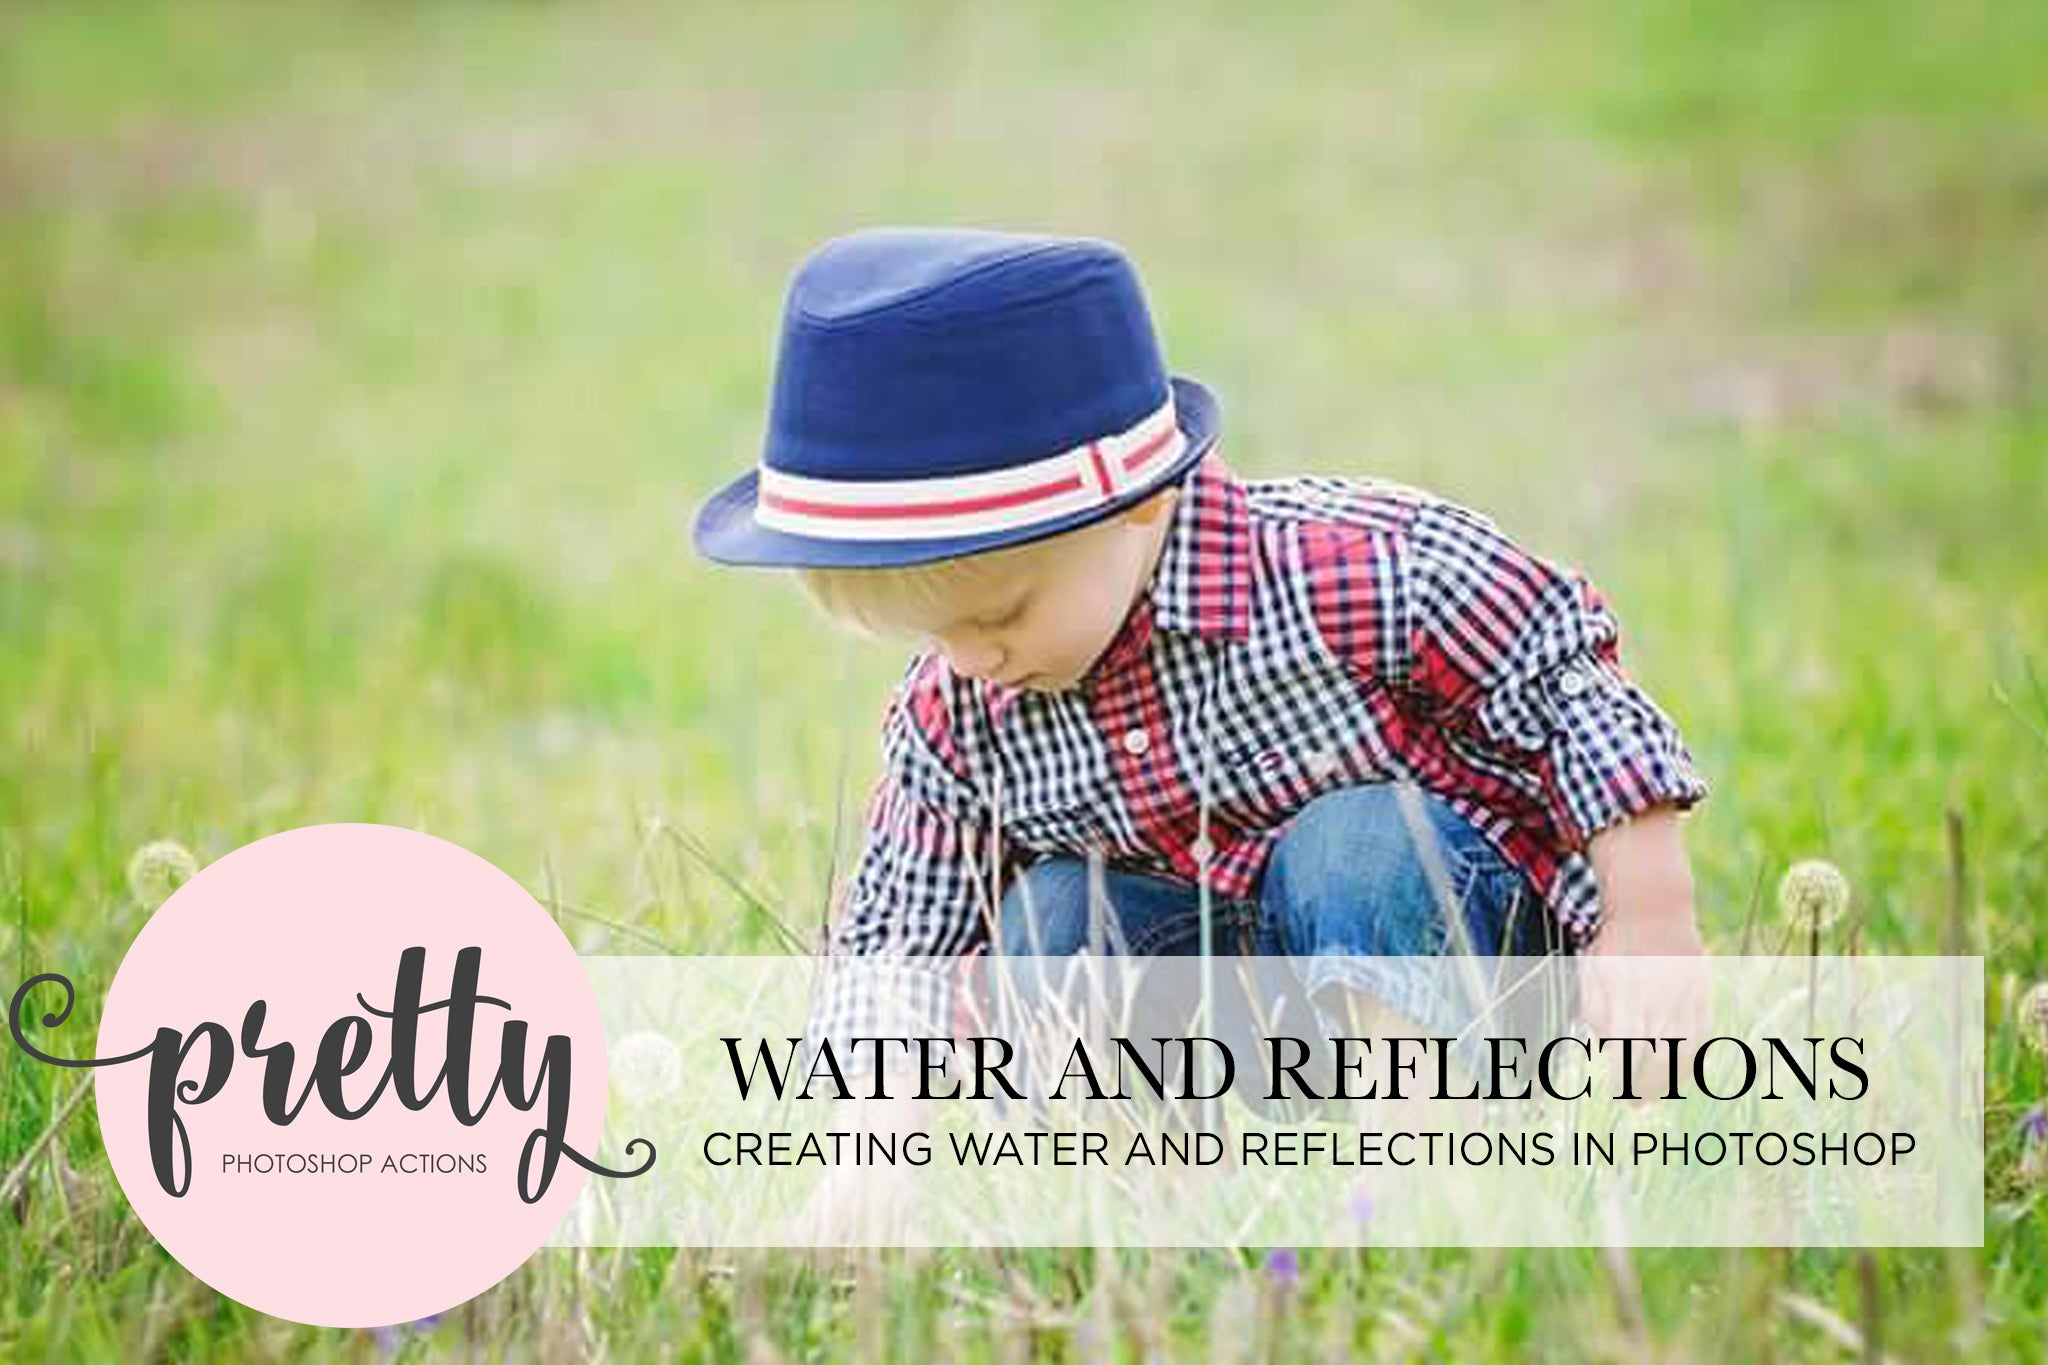 Adding Water and Reflection to your Image in Photoshop Blog Post